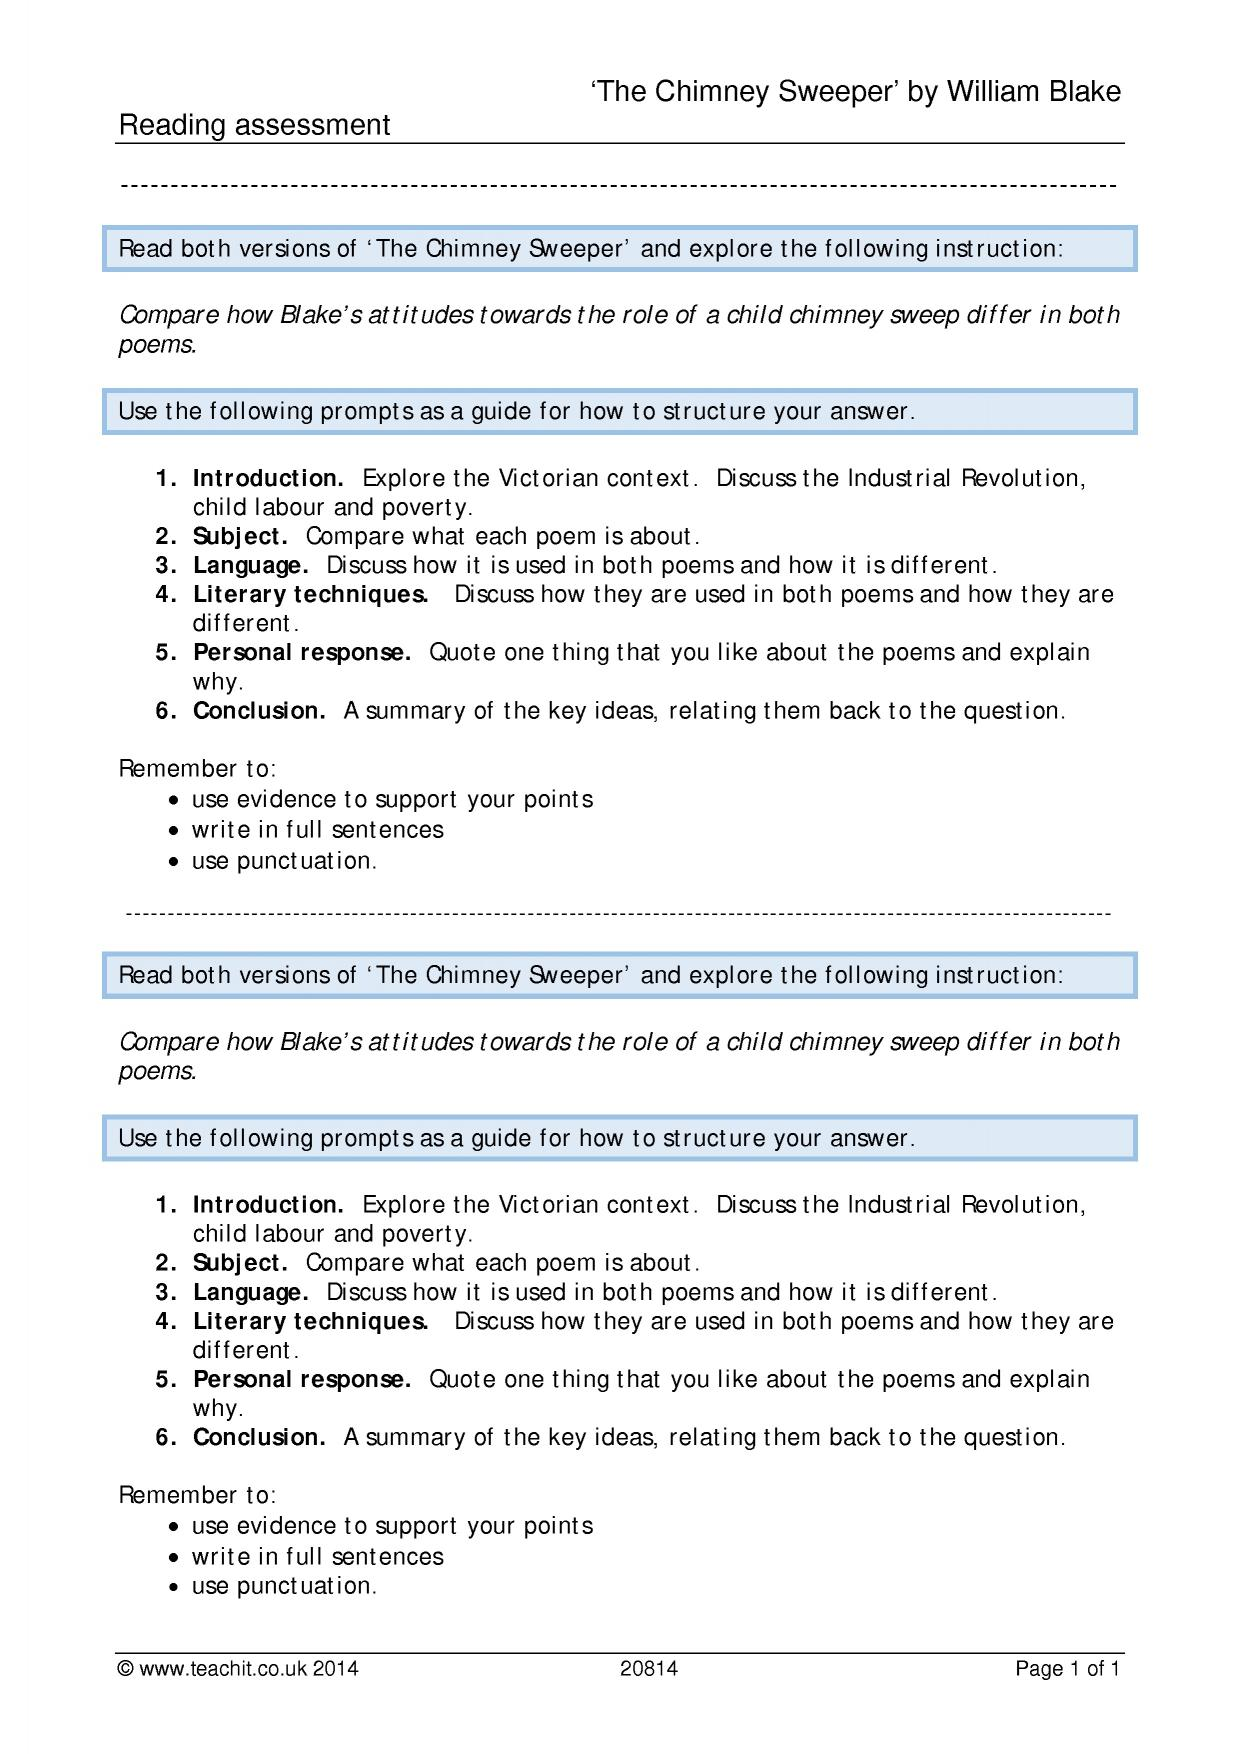 Worksheets Lord Of The Flies Worksheets 100 lord of the flies worksheets summary william blake search results teachit english